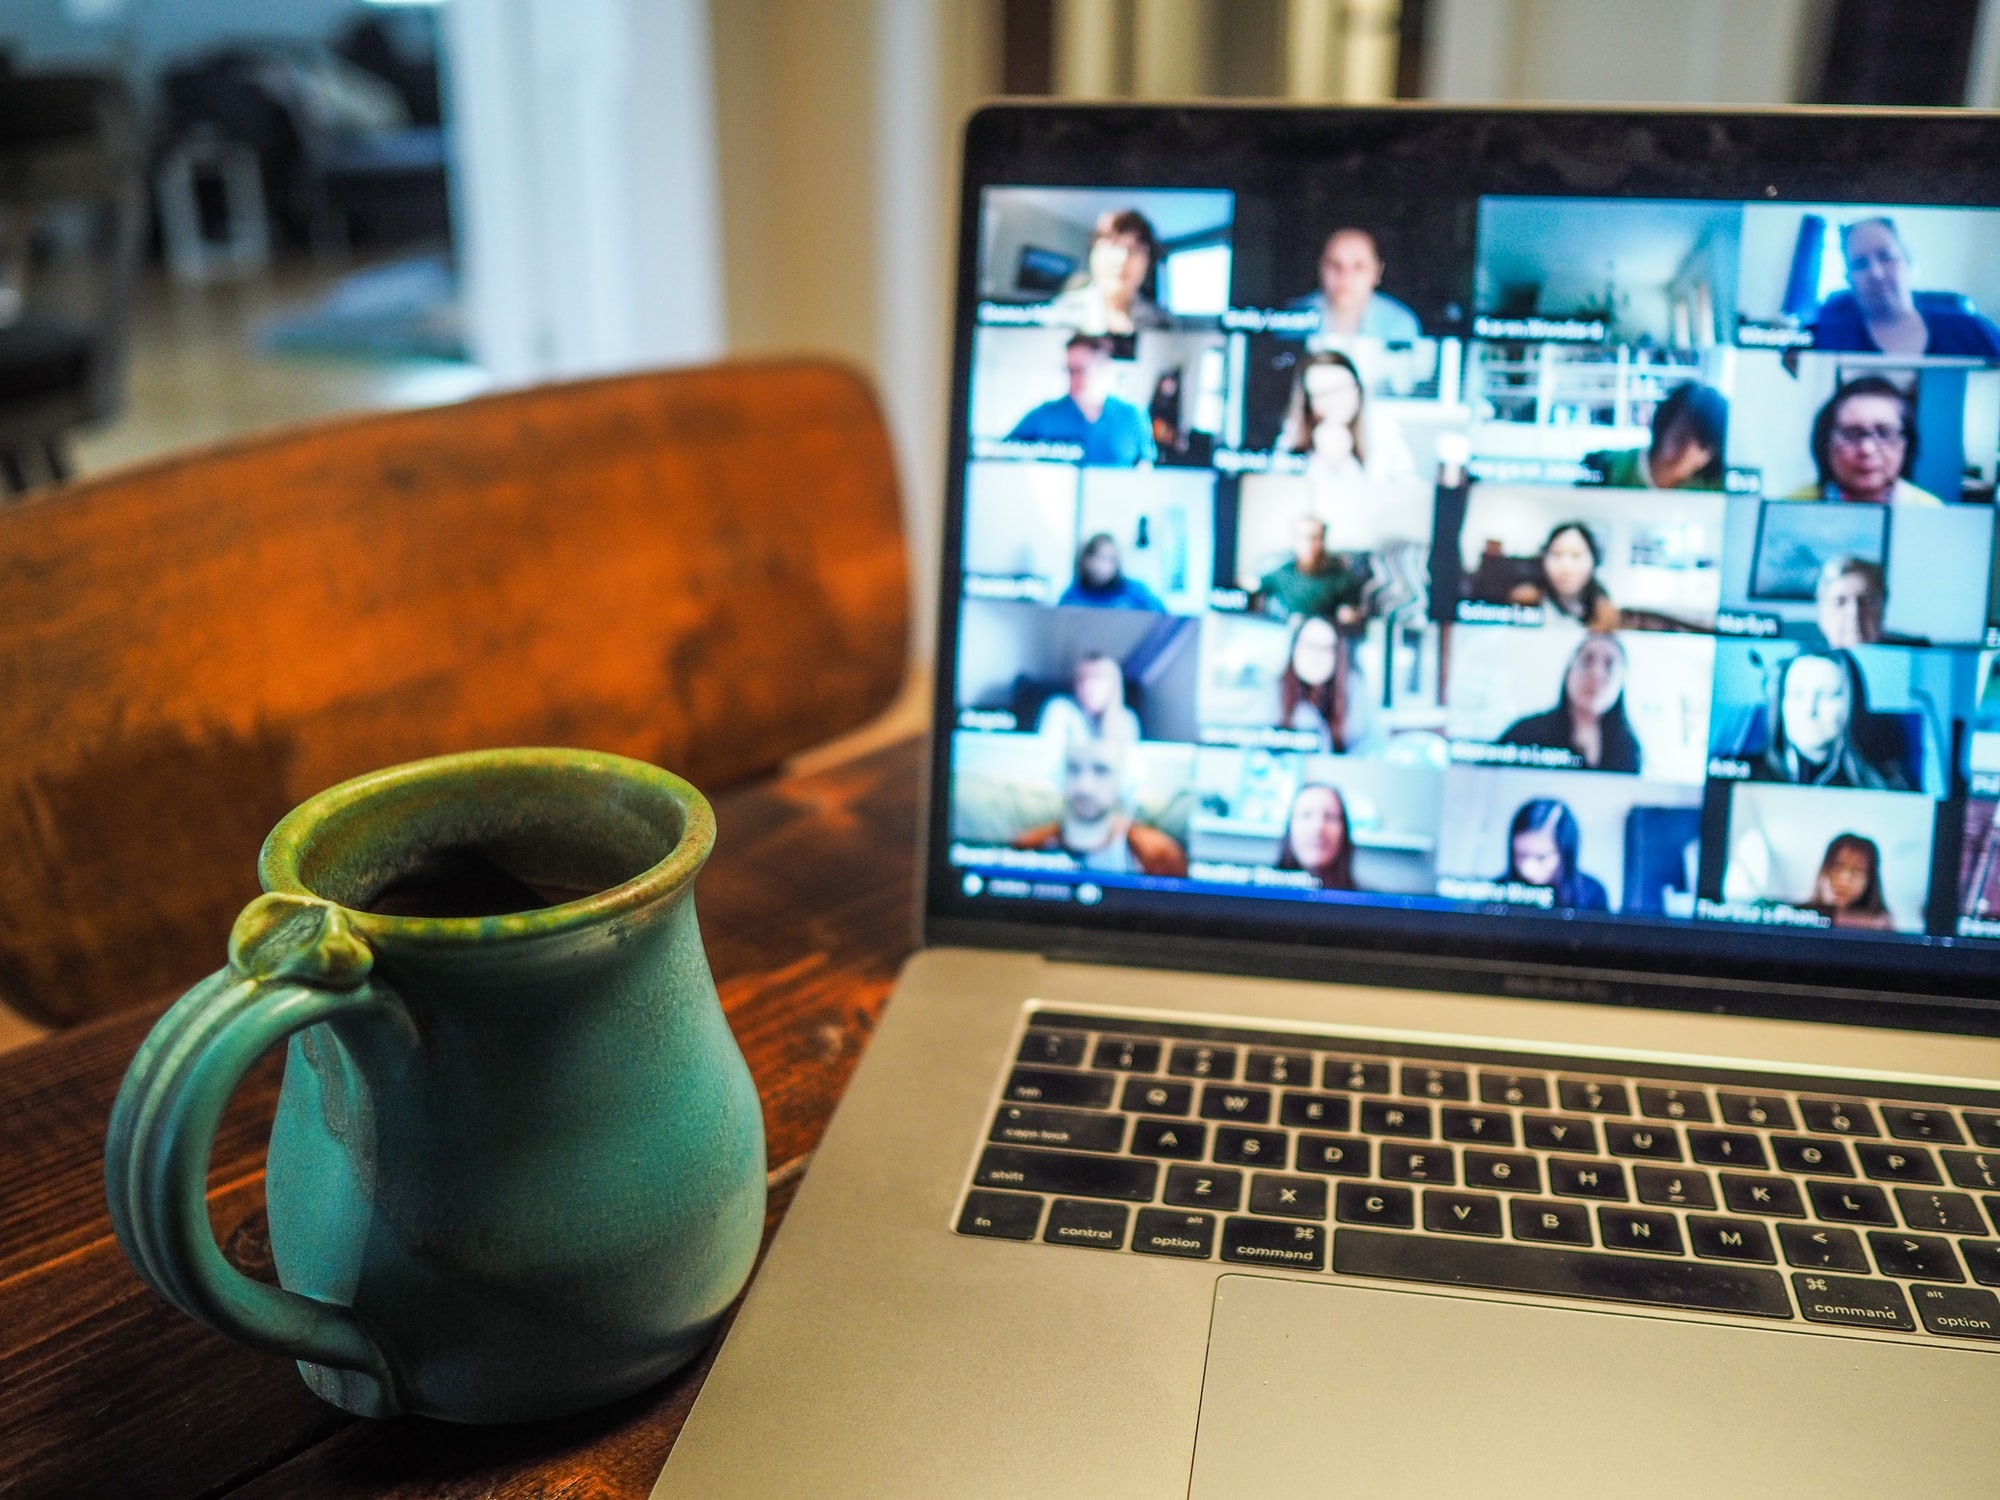 How to find online meetings